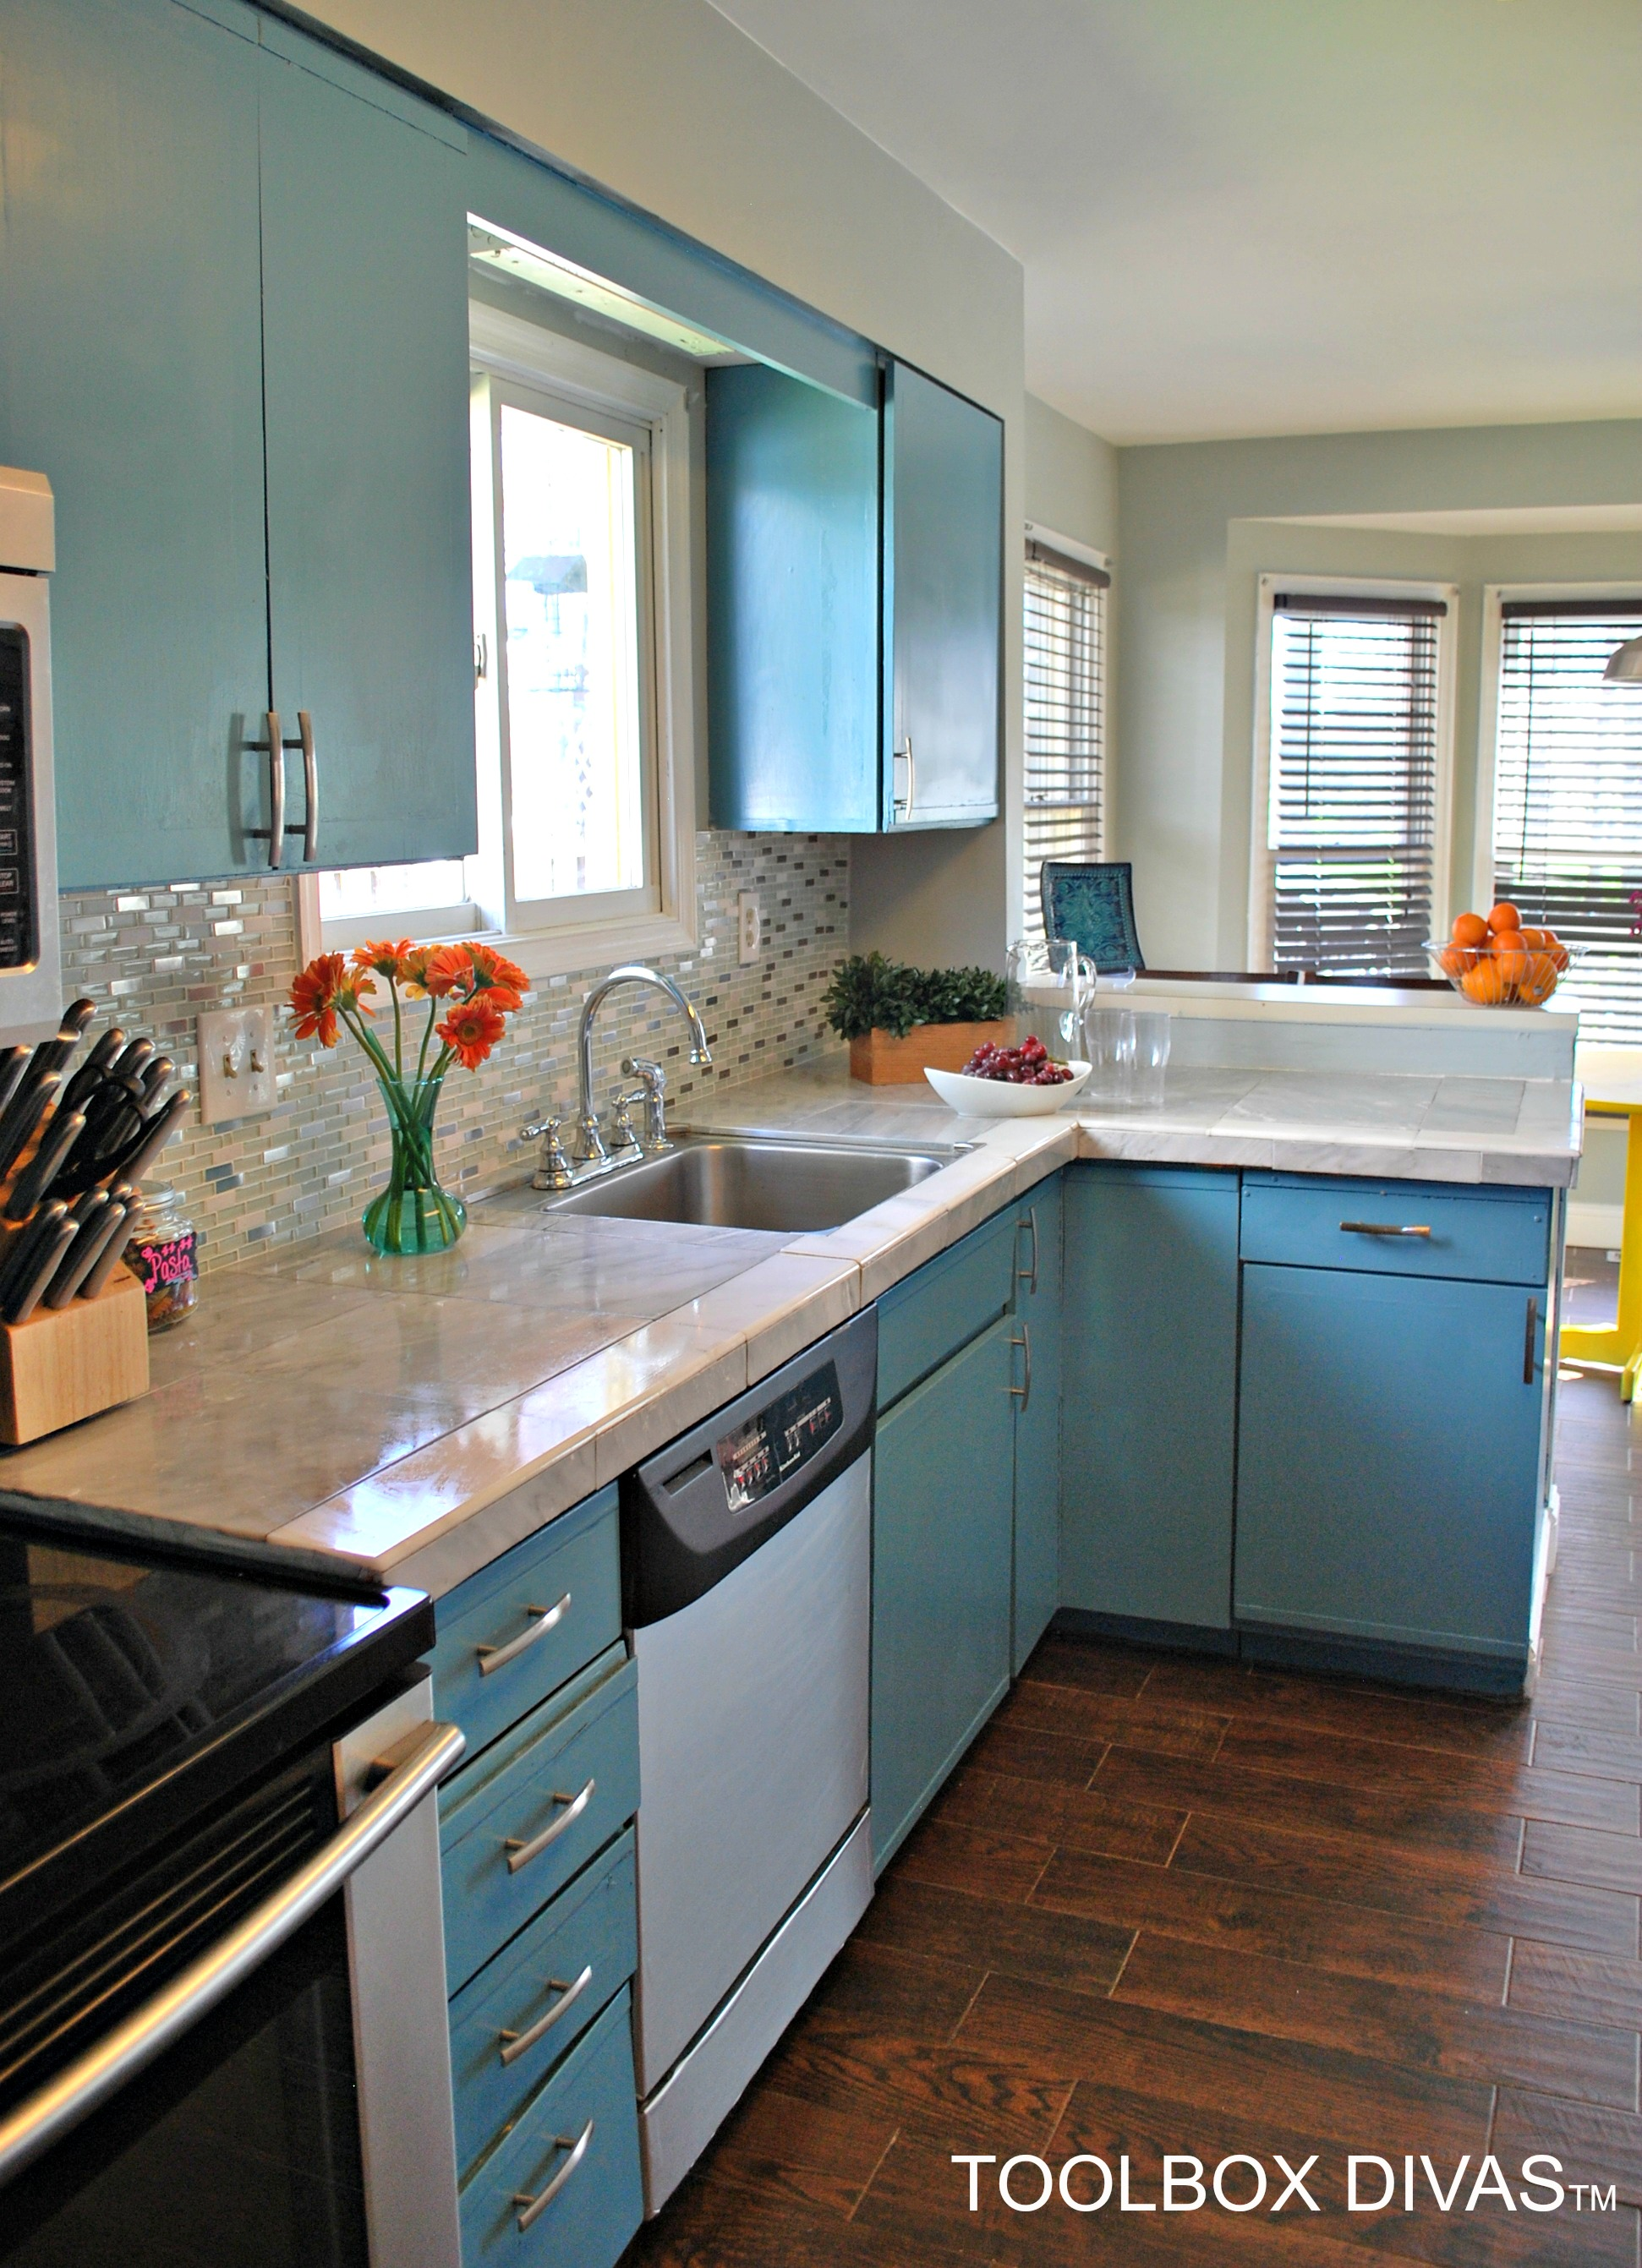 budget kitchen remodel blue cabinets and marble countertop hack chalkboard wall @ToolboxDivas